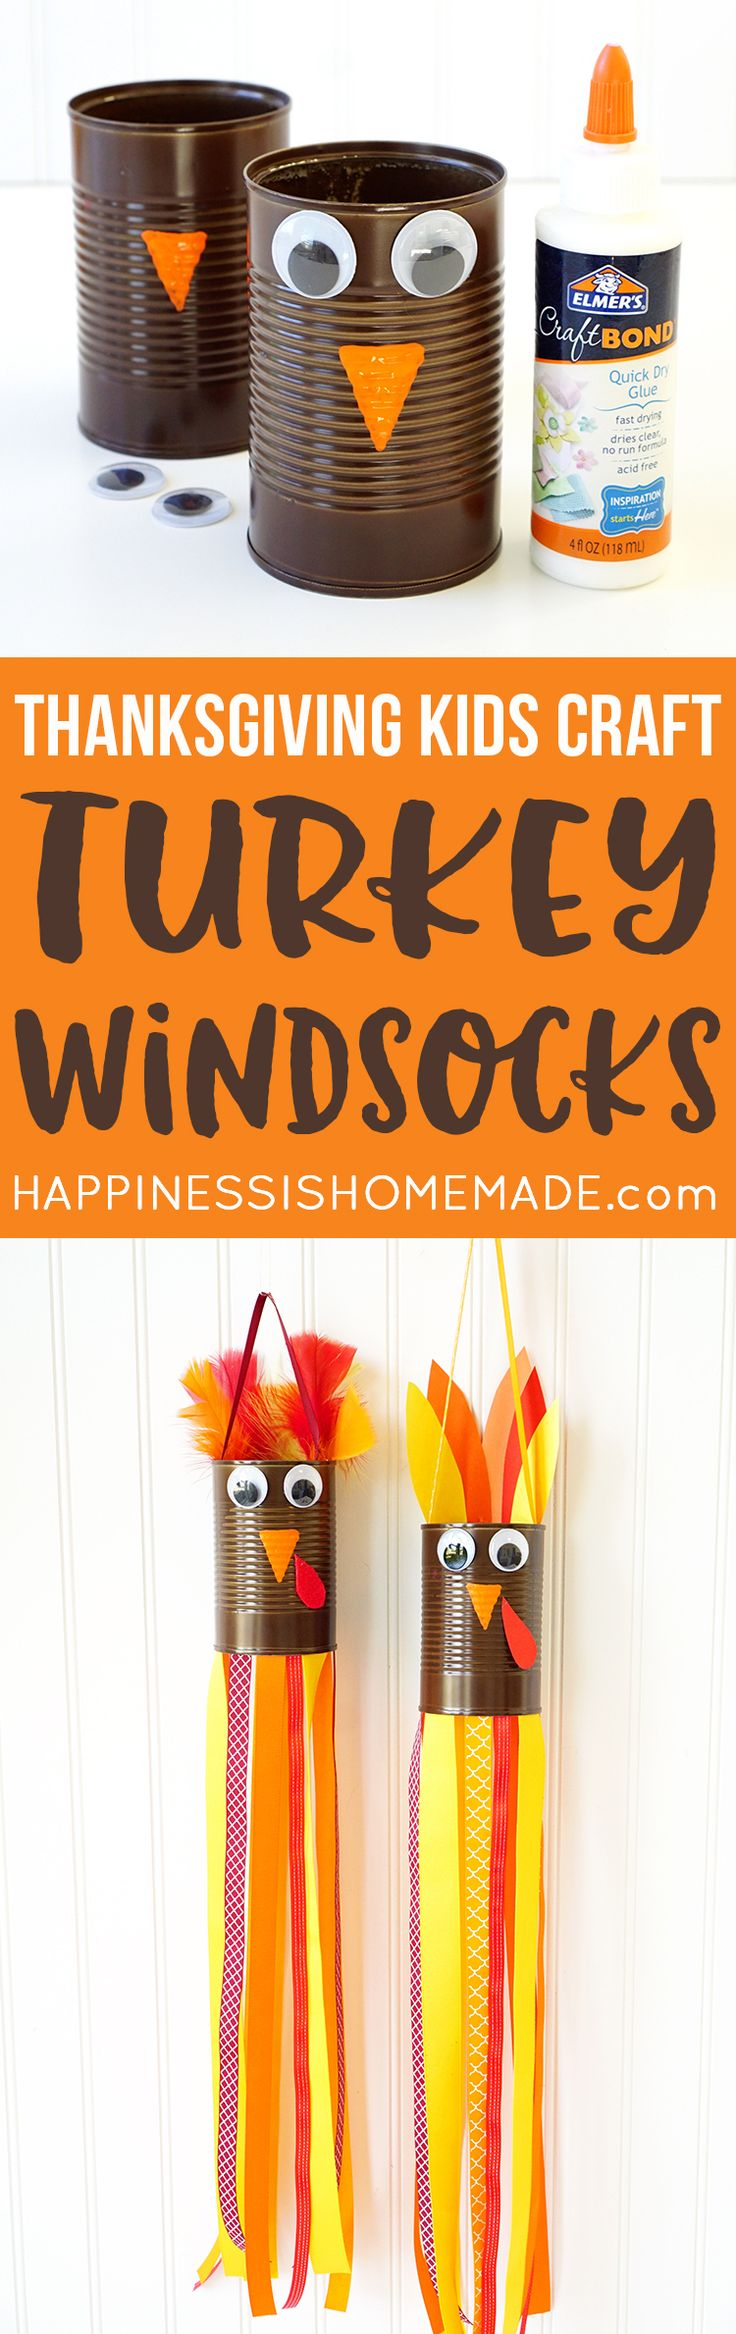 Thanksgiving Kids Craft Turkey Windsocks